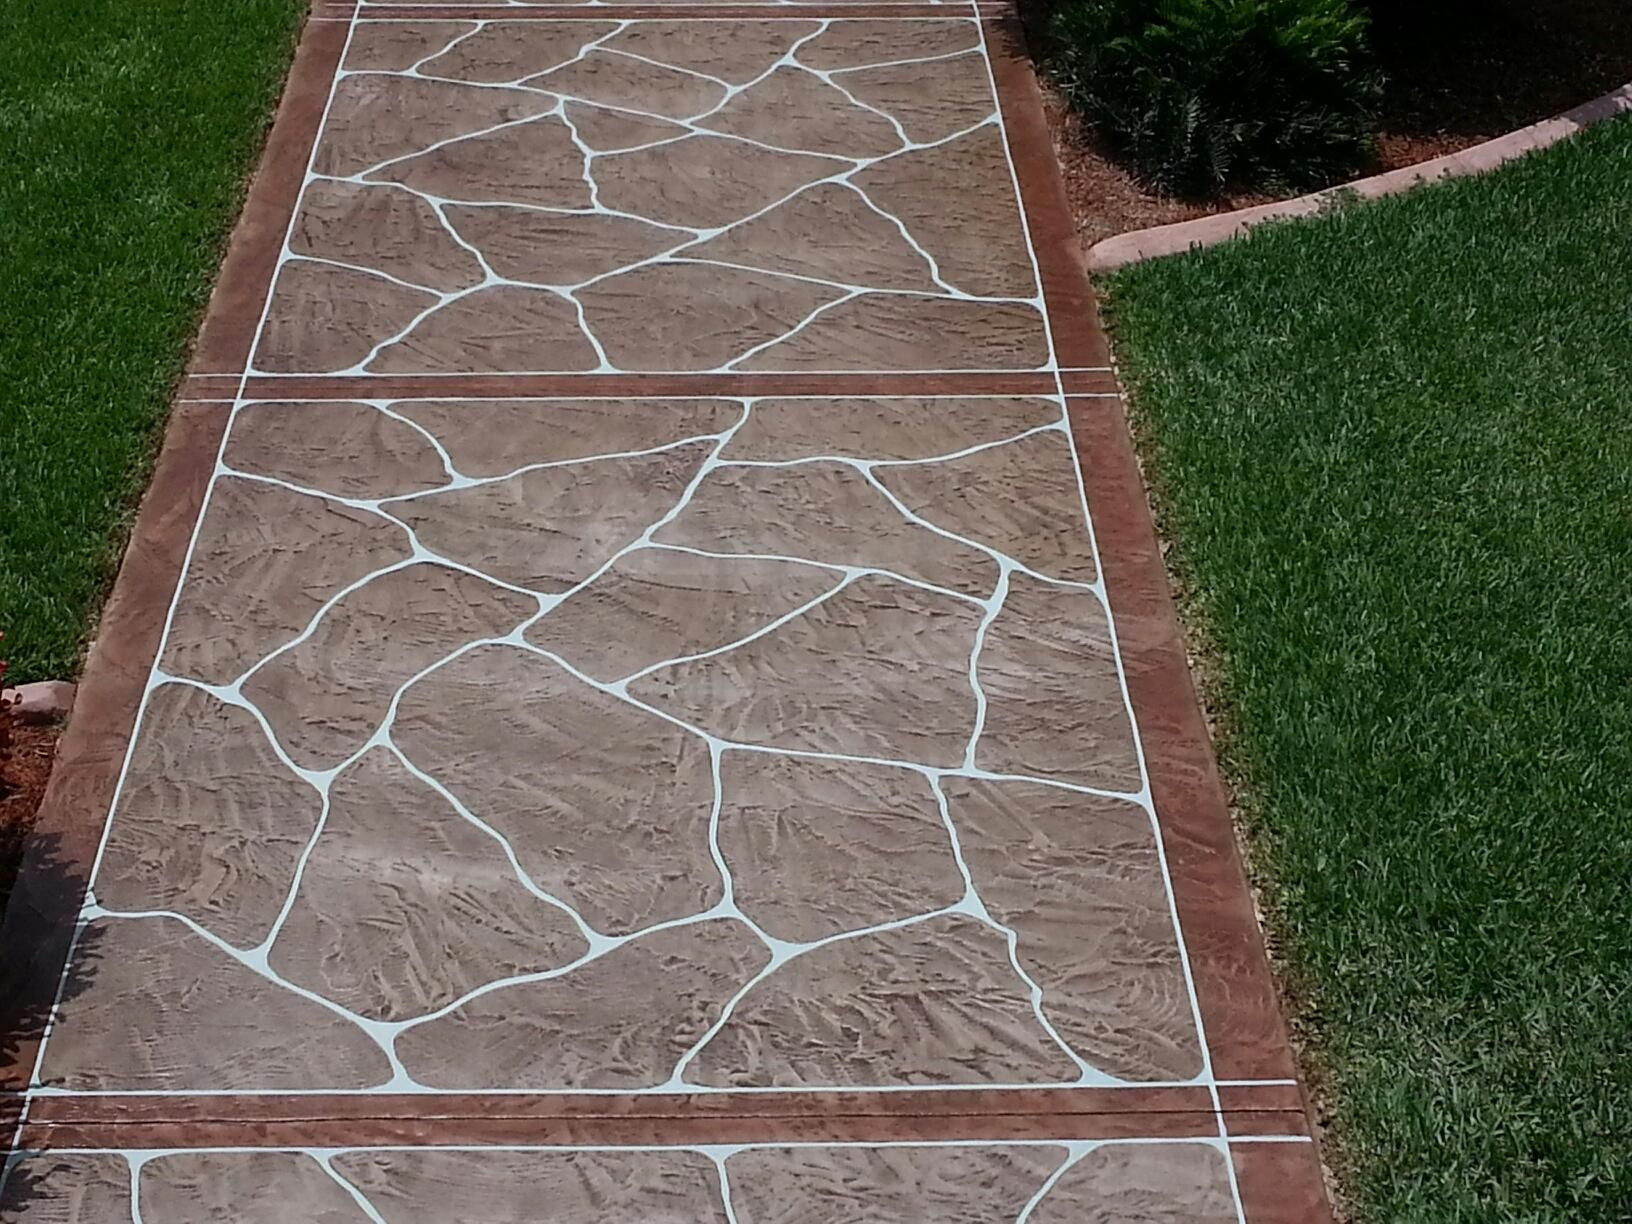 Decorative Concrete Resurfacing Is Created In Cape Coral Fl The